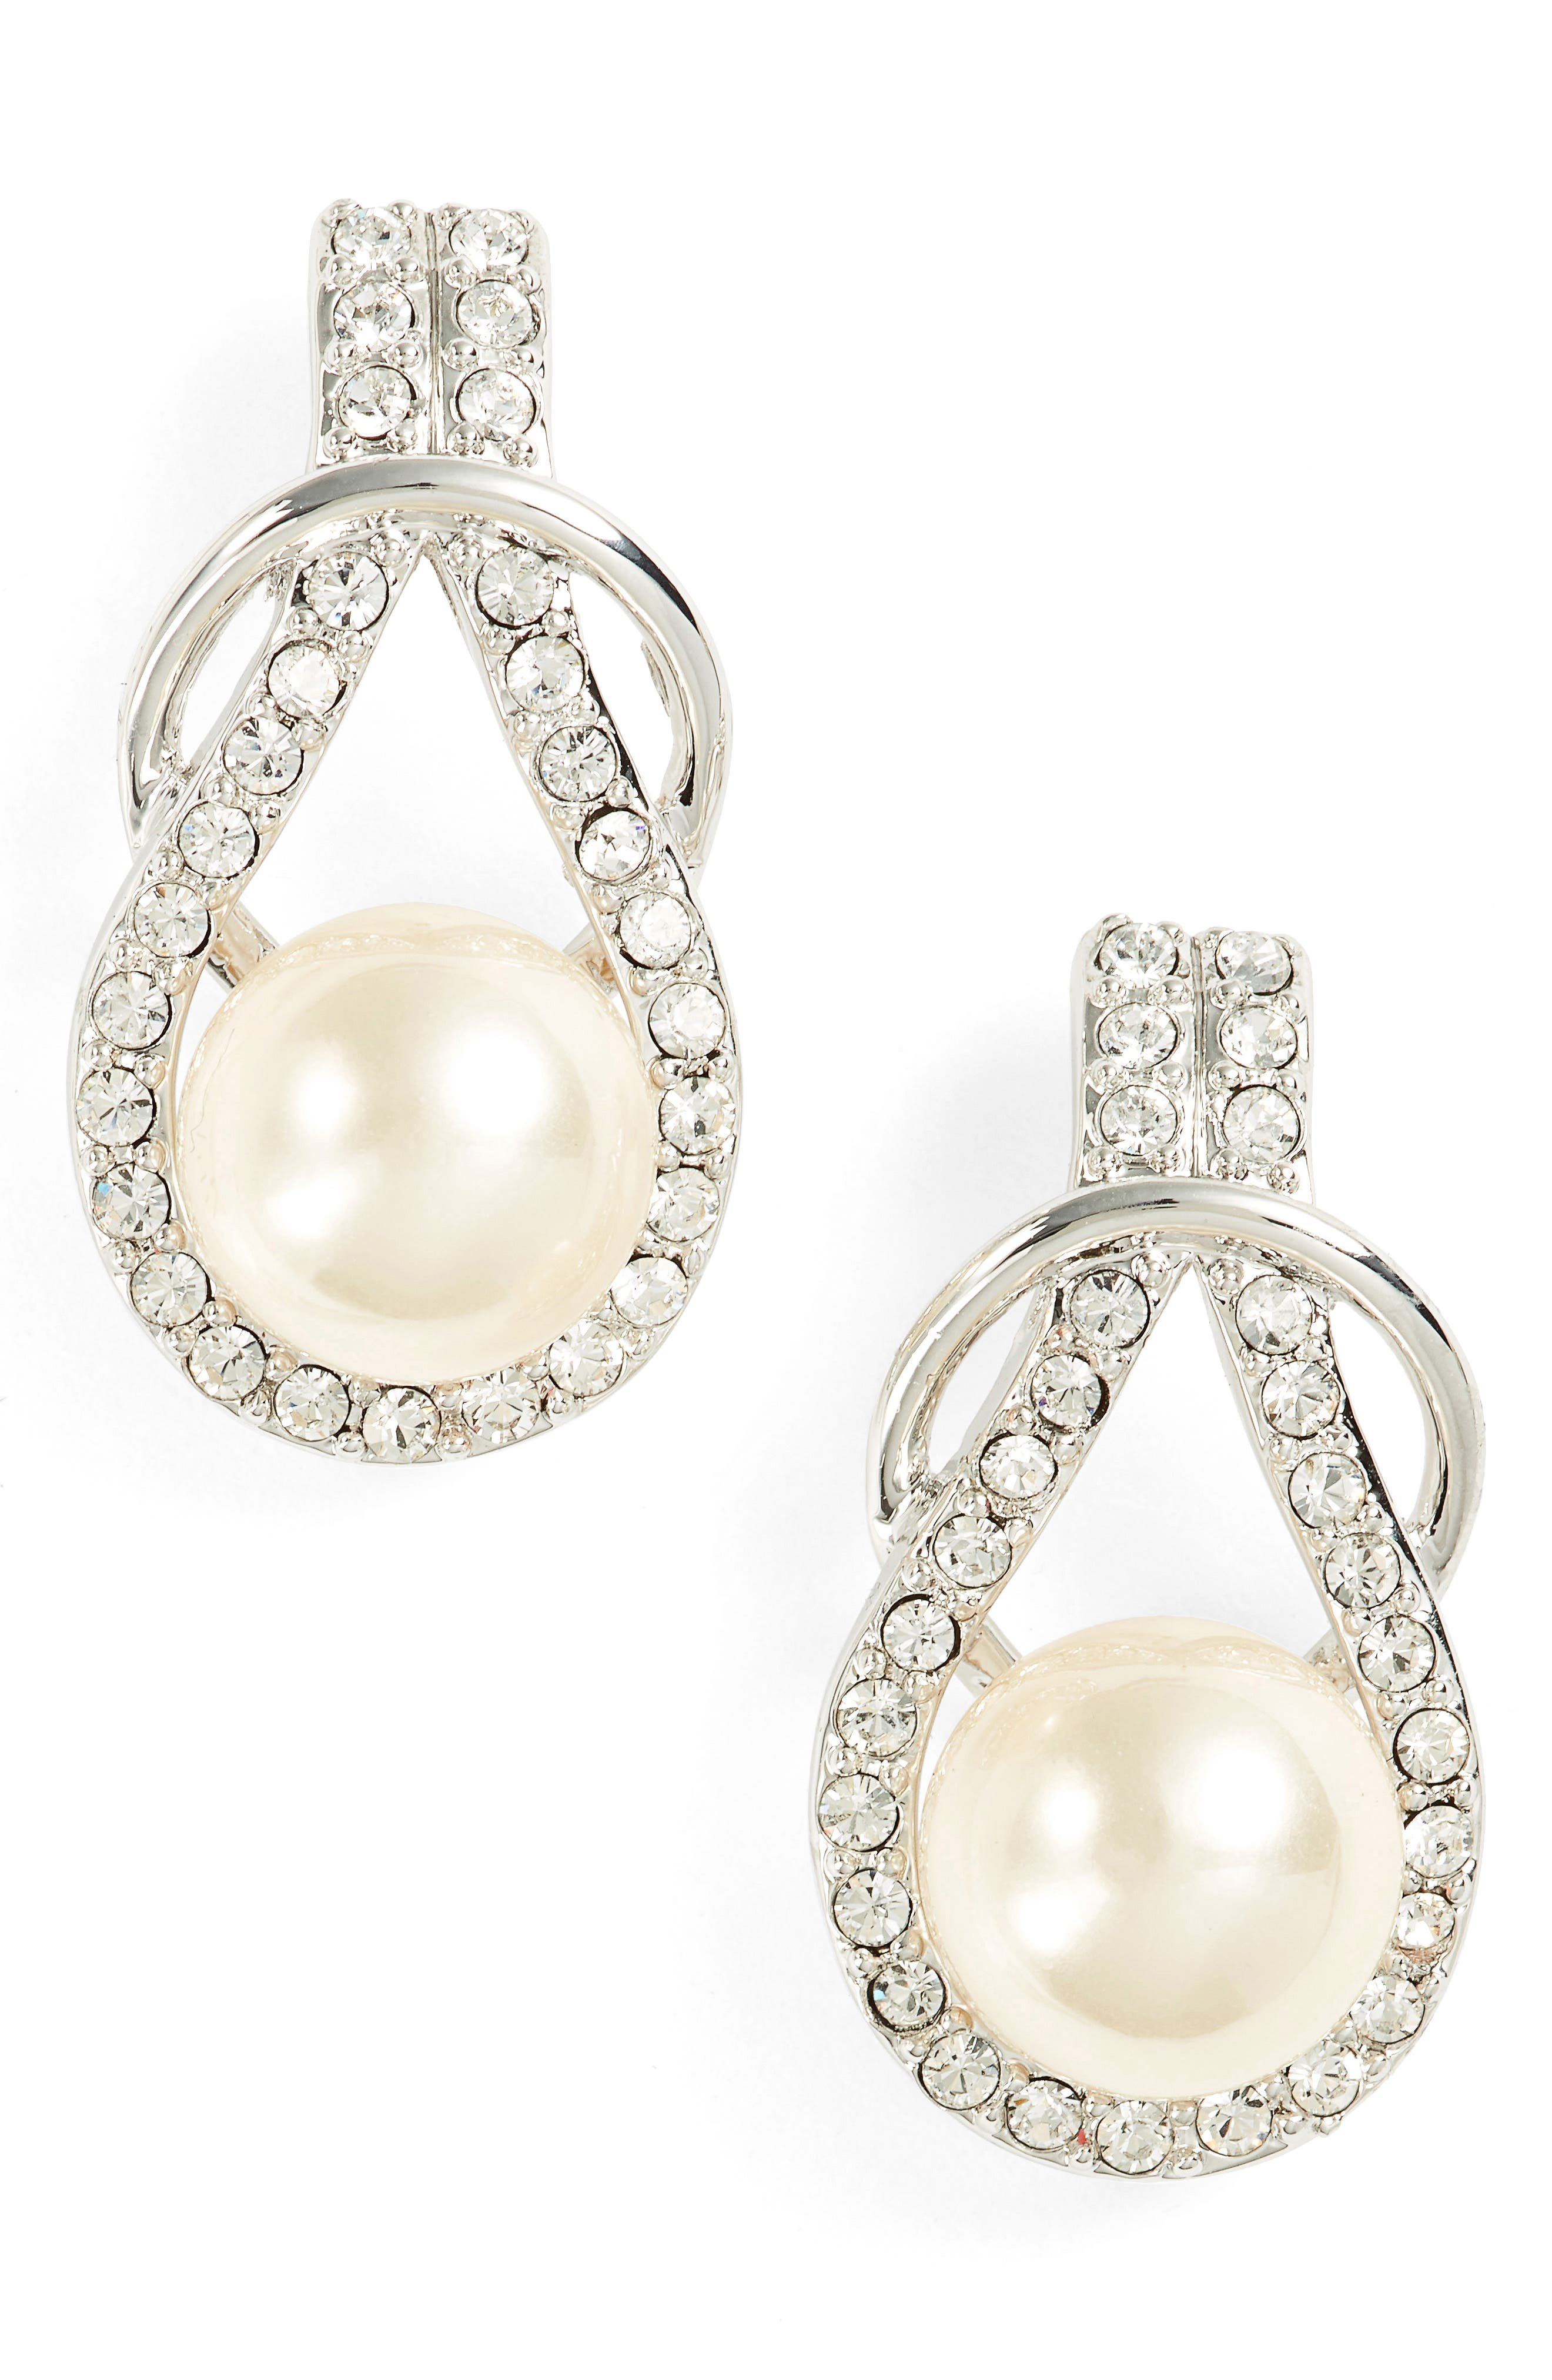 Knot Imitation Pearl Drop Earrings,                         Main,                         color, IVORY PEARL / SILVER